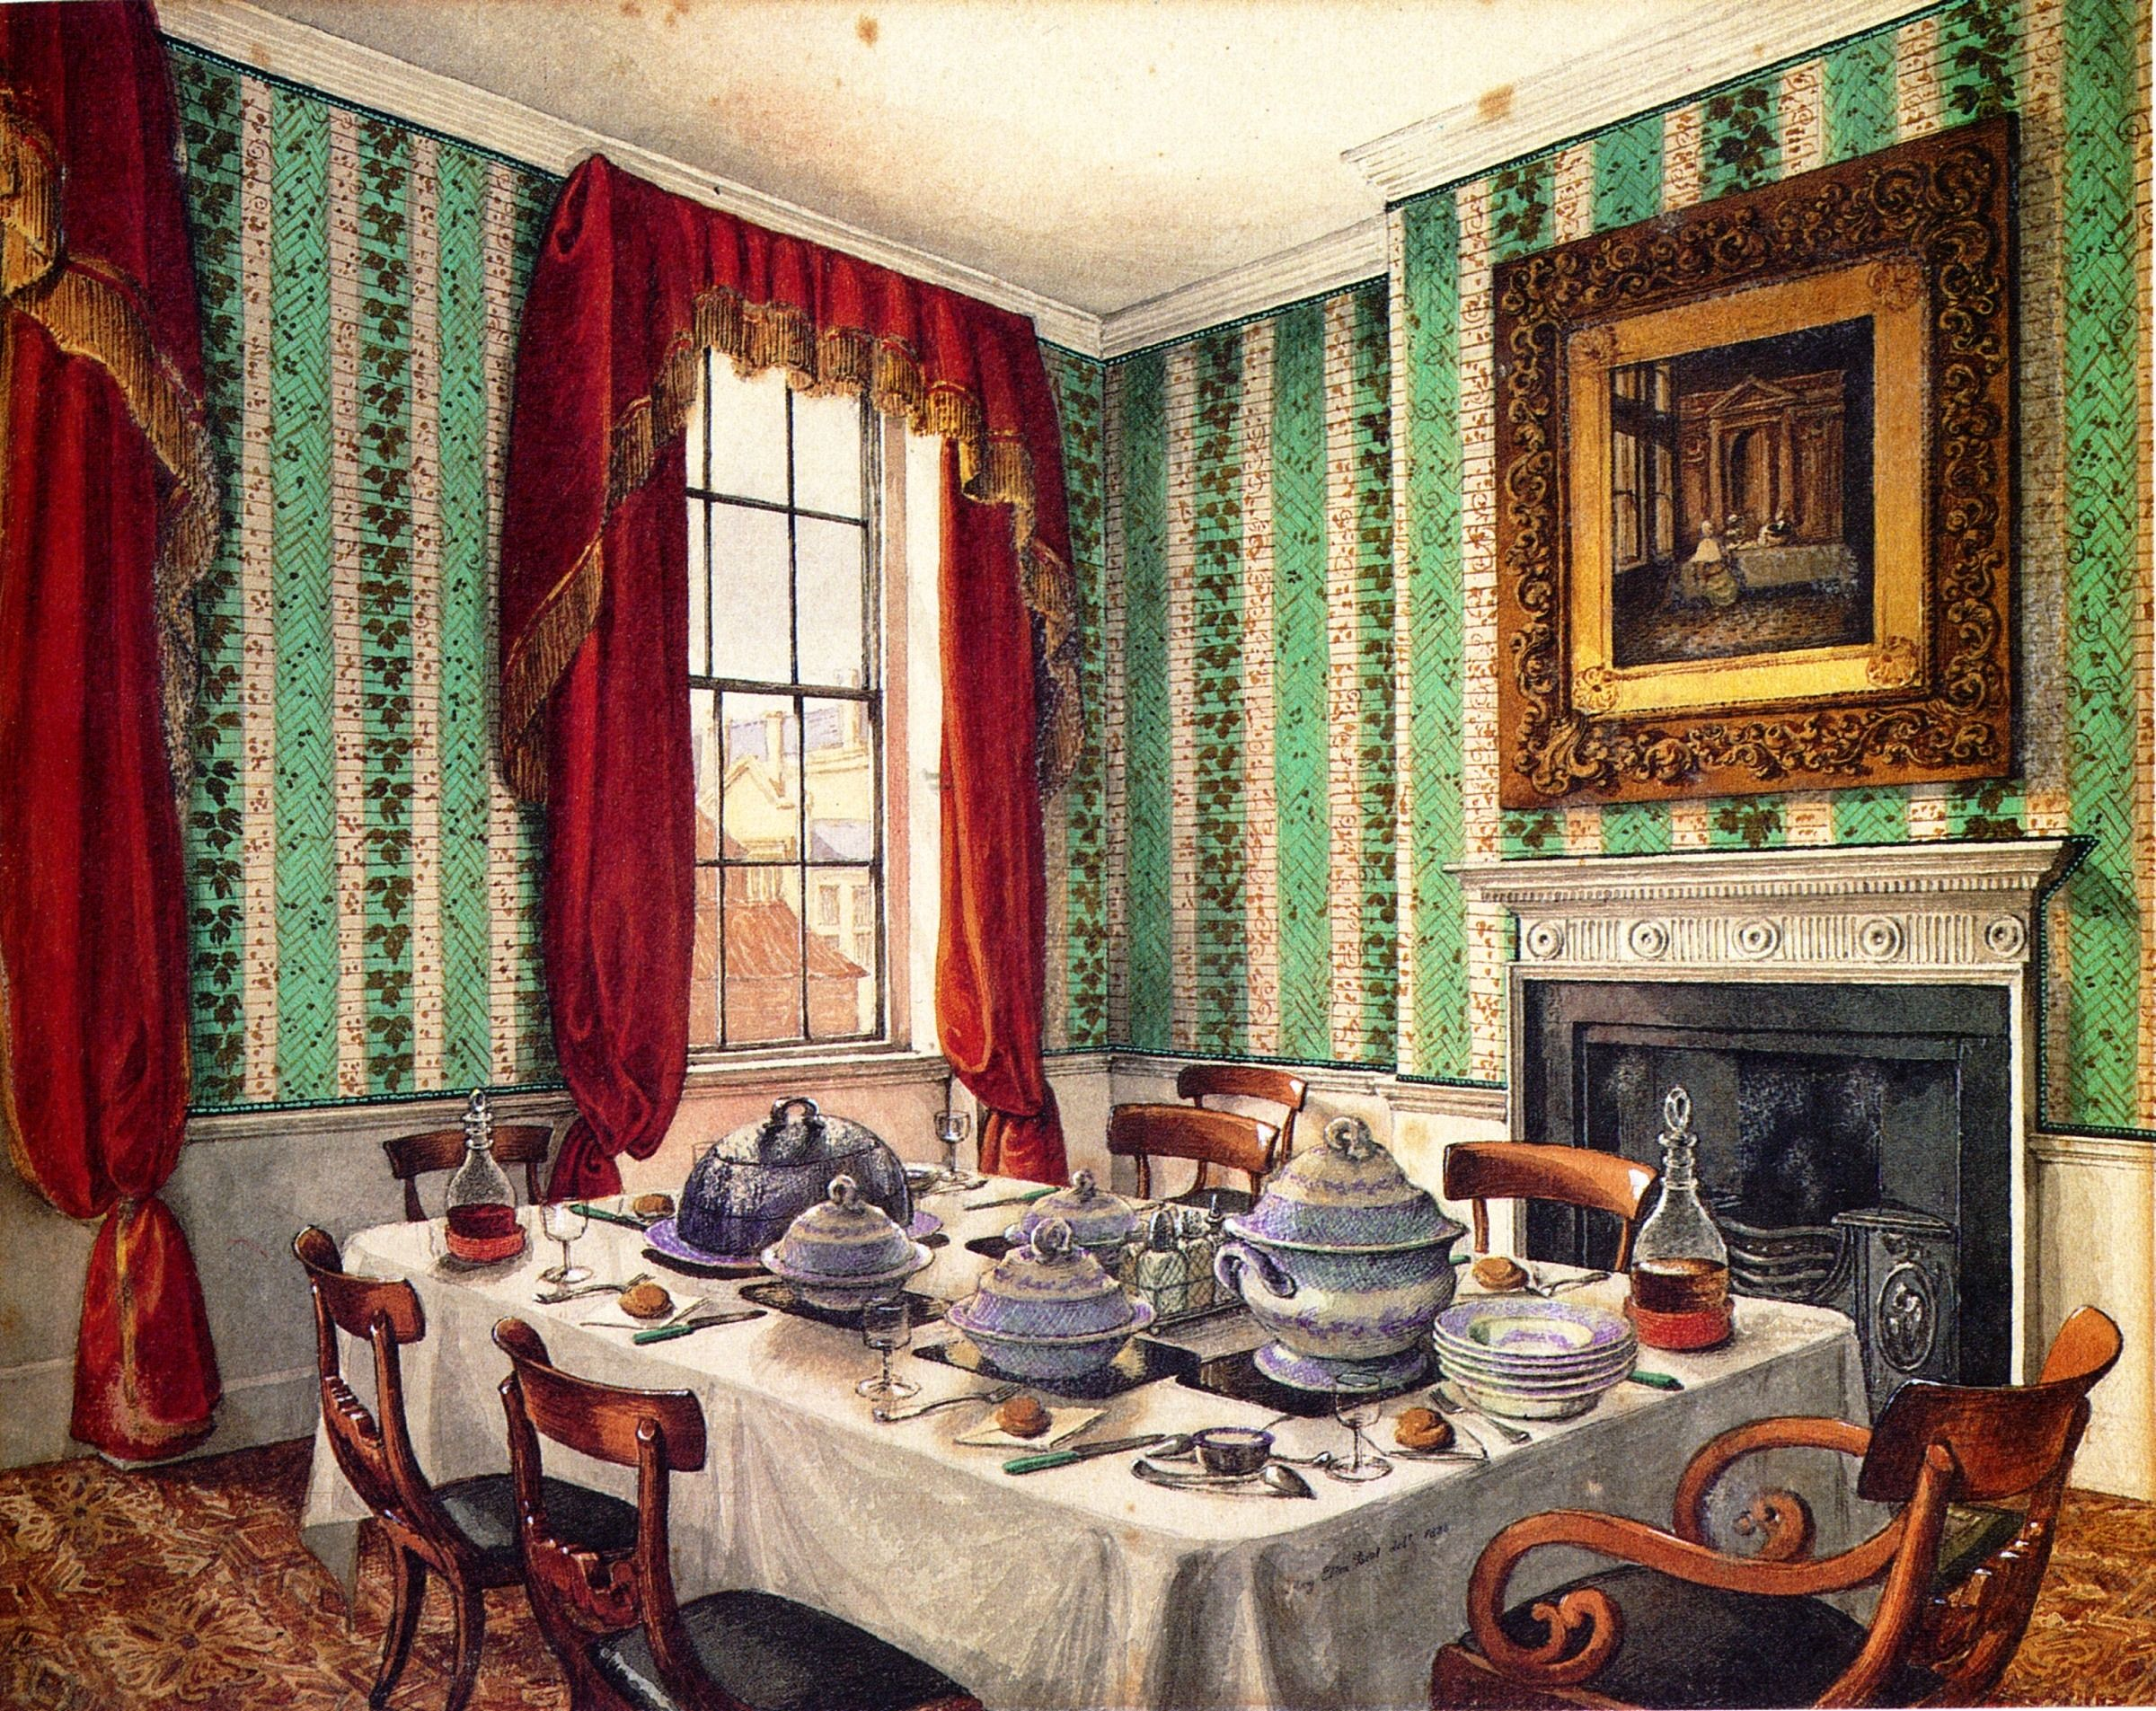 Mary ellen best 1809 1891 our dining table at york 1835 2400x1905